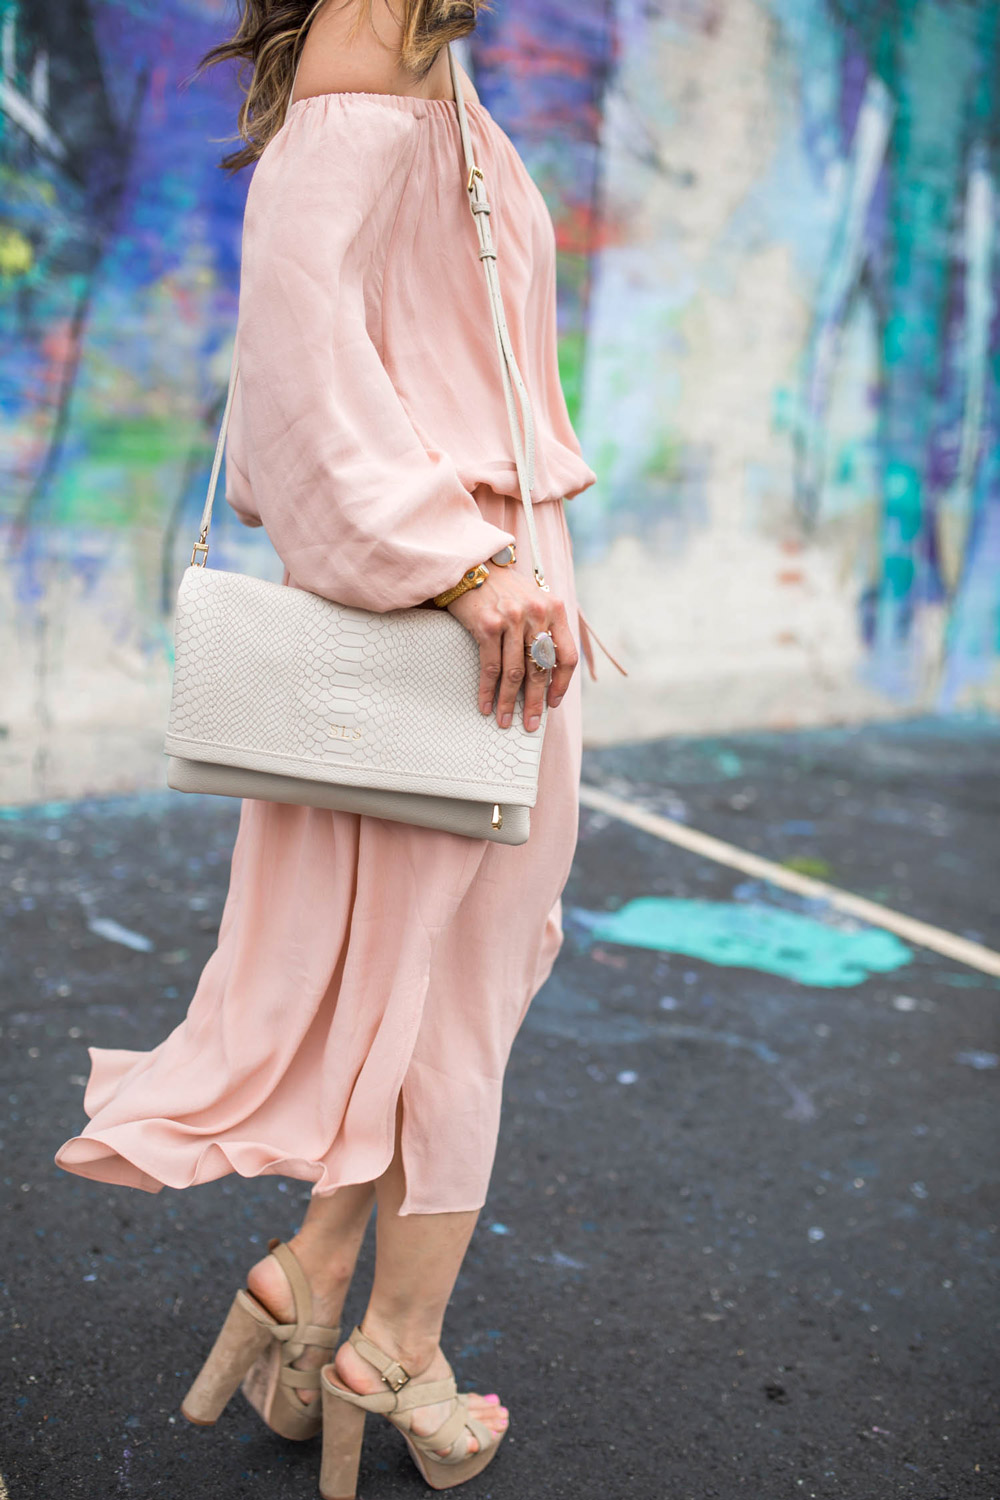 gigi ny carly clutch in bone, whowhatwear x target blush pink off the shoulder dress